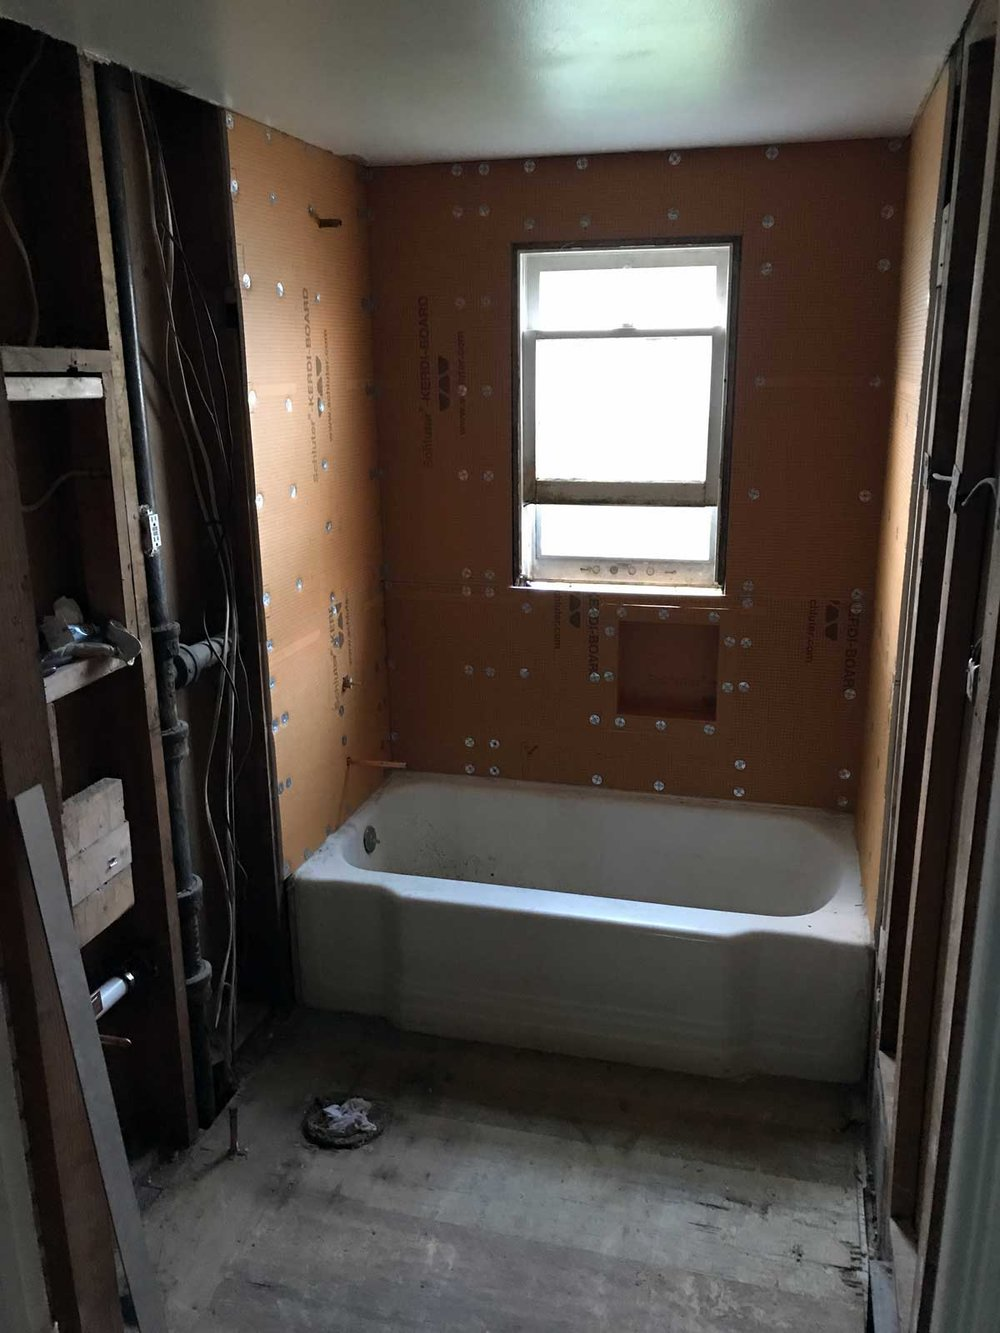 15-Day-Bathroom-Renovation-11.jpg